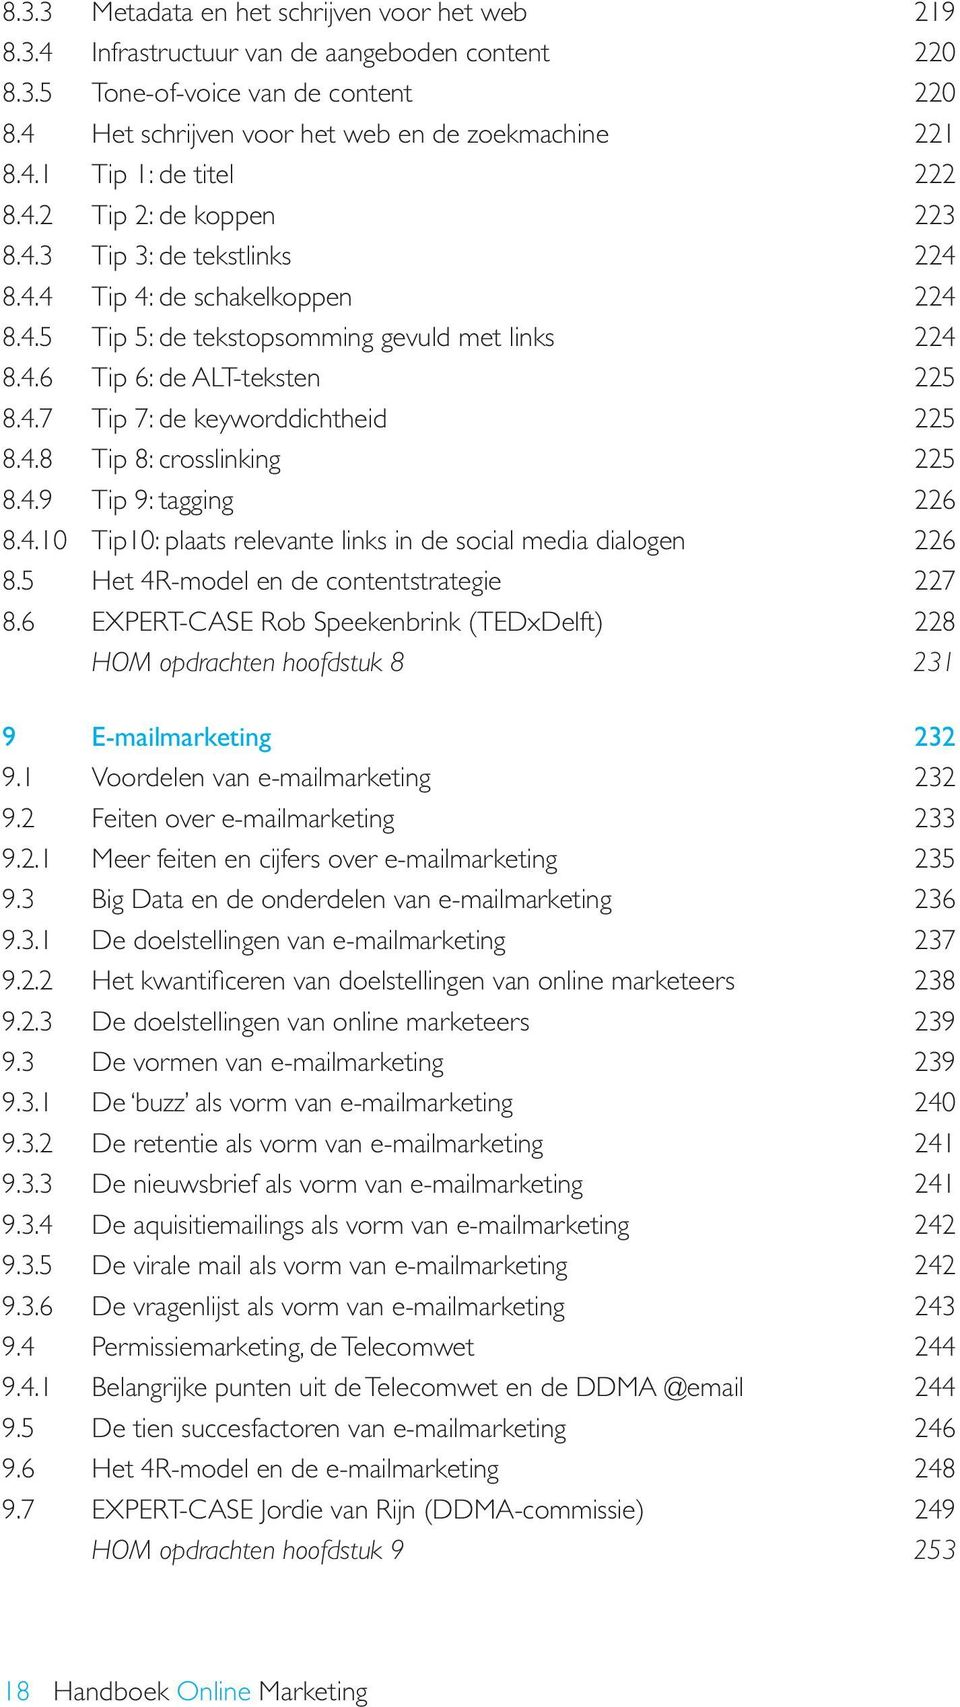 4.8 Tip 8: crosslinking 225 8.4.9 Tip 9: tagging 226 8.4.10 Tip10: plaats relevante links in de social media dialogen 226 8.5 Het 4R-model en de contentstrategie 227 8.